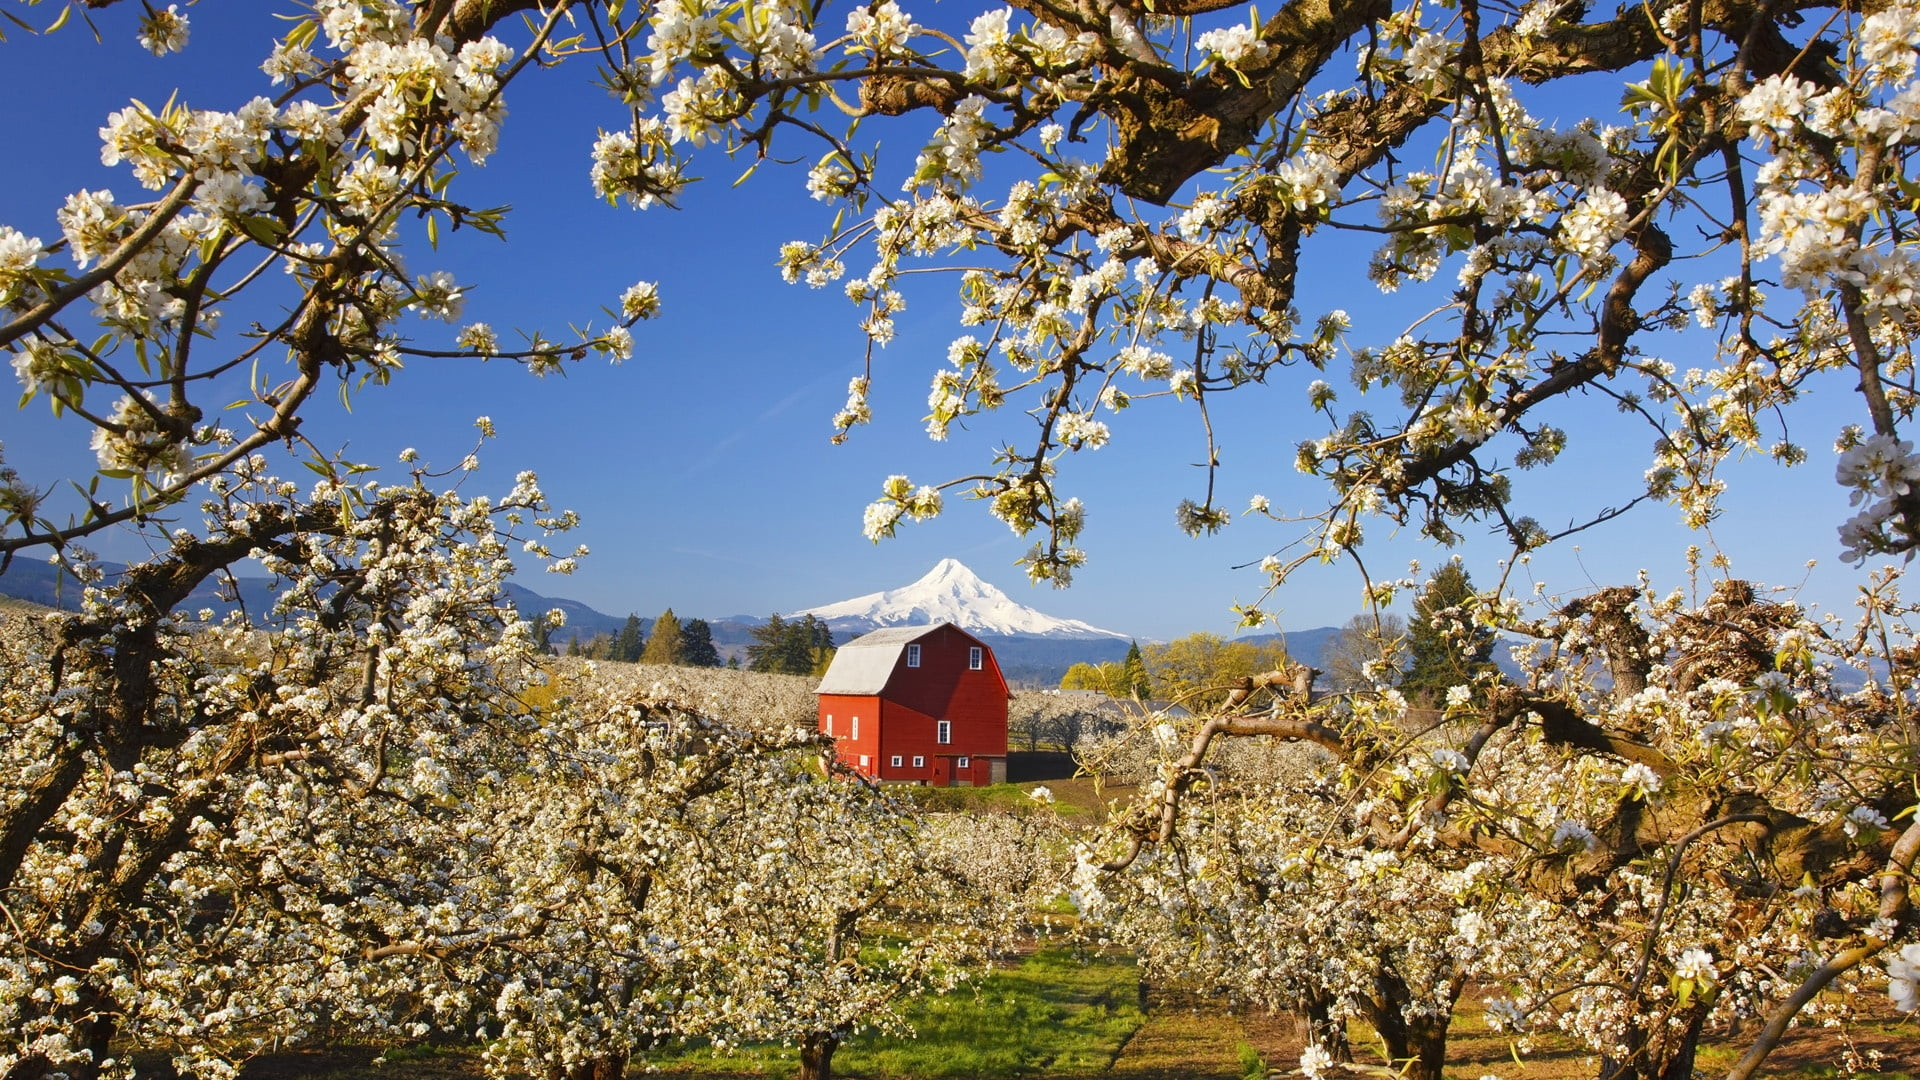 1920x1080 photo of cherry blossoms and red barn HD wallpaper